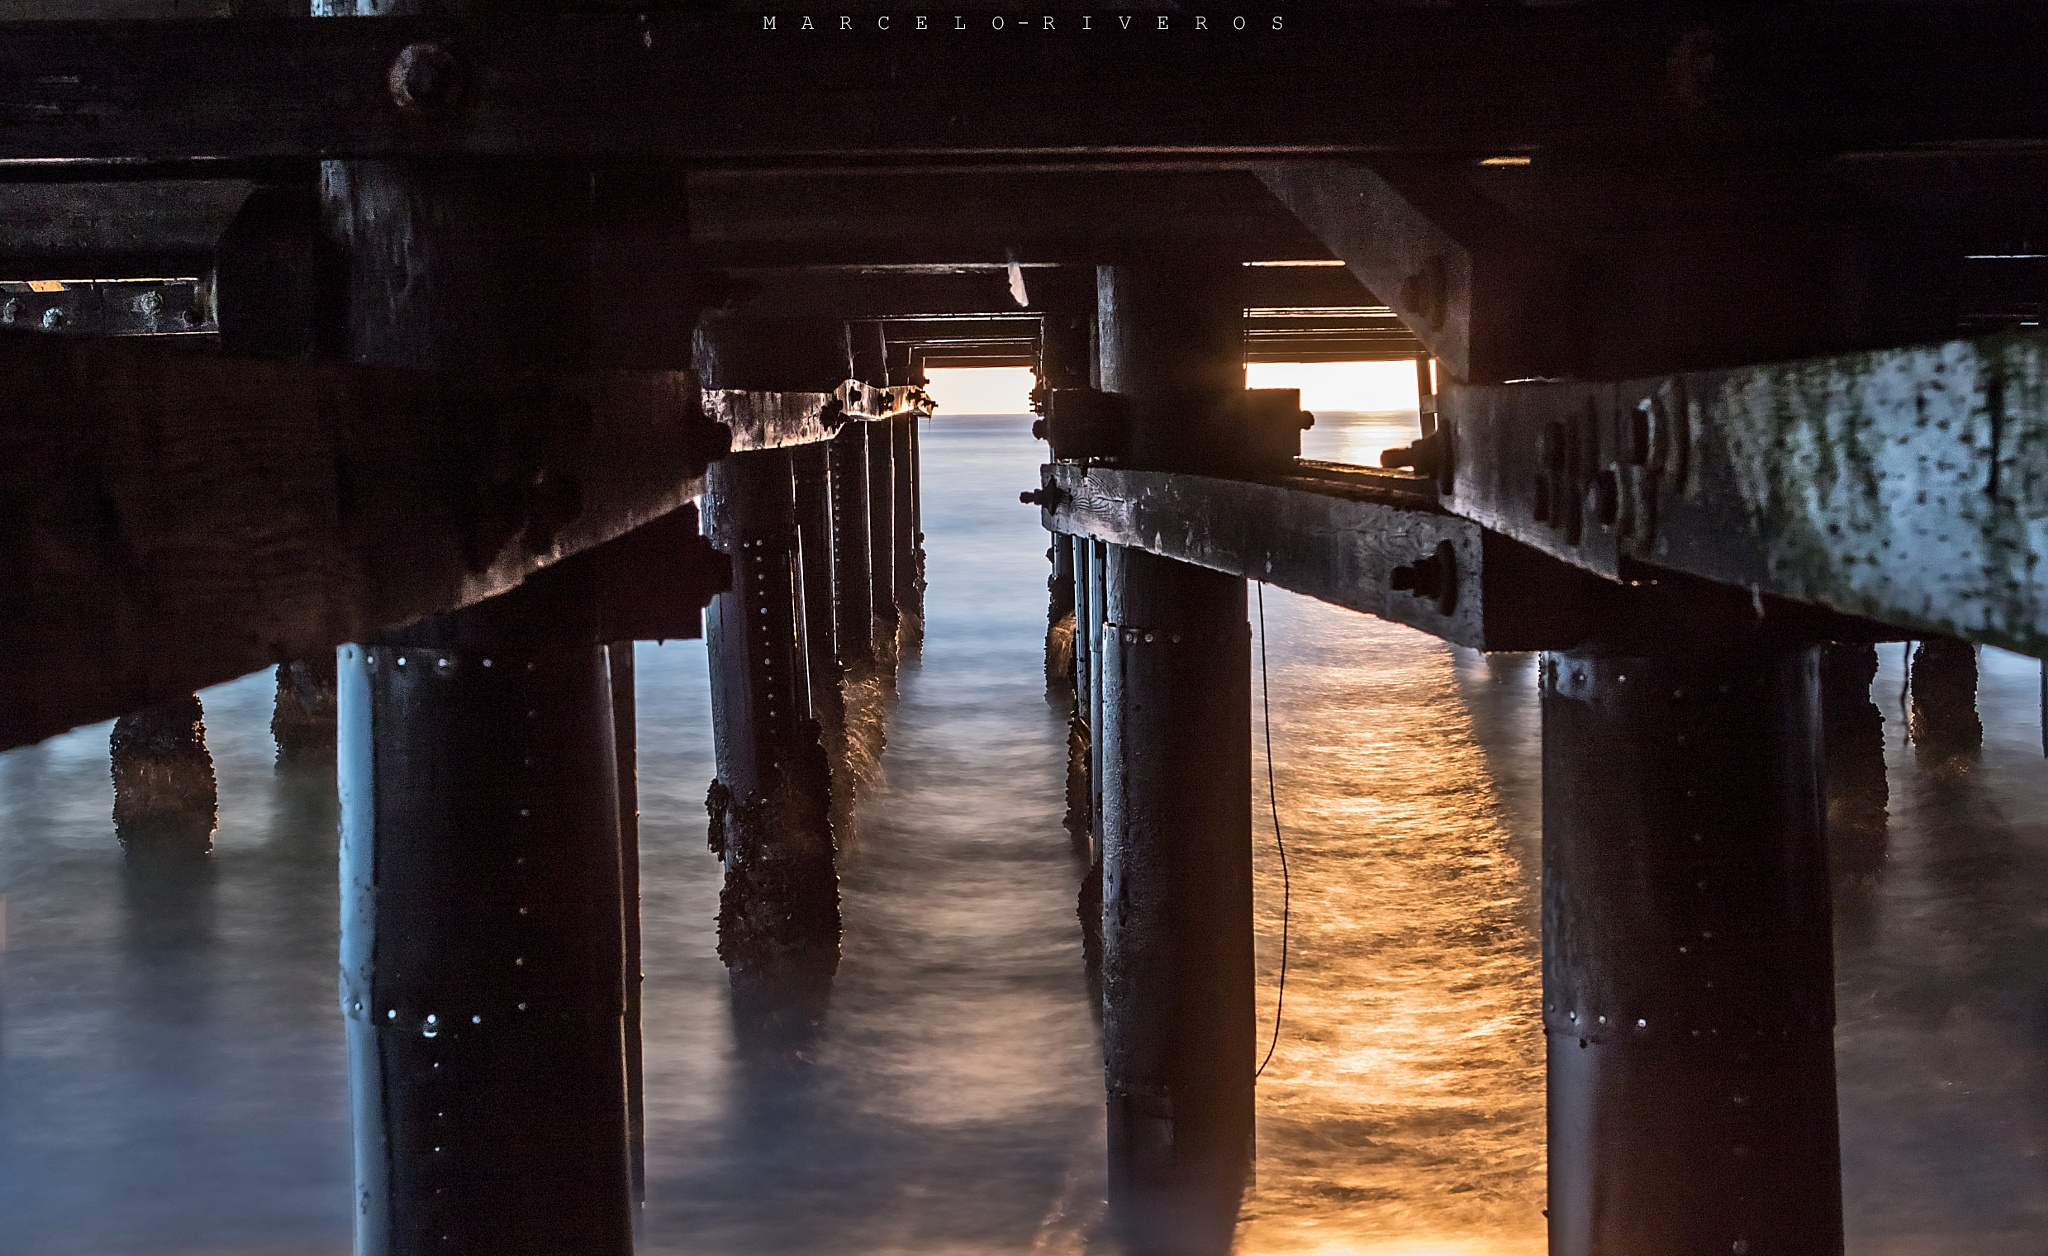 Underneath the Pier by Marcelo Riveros